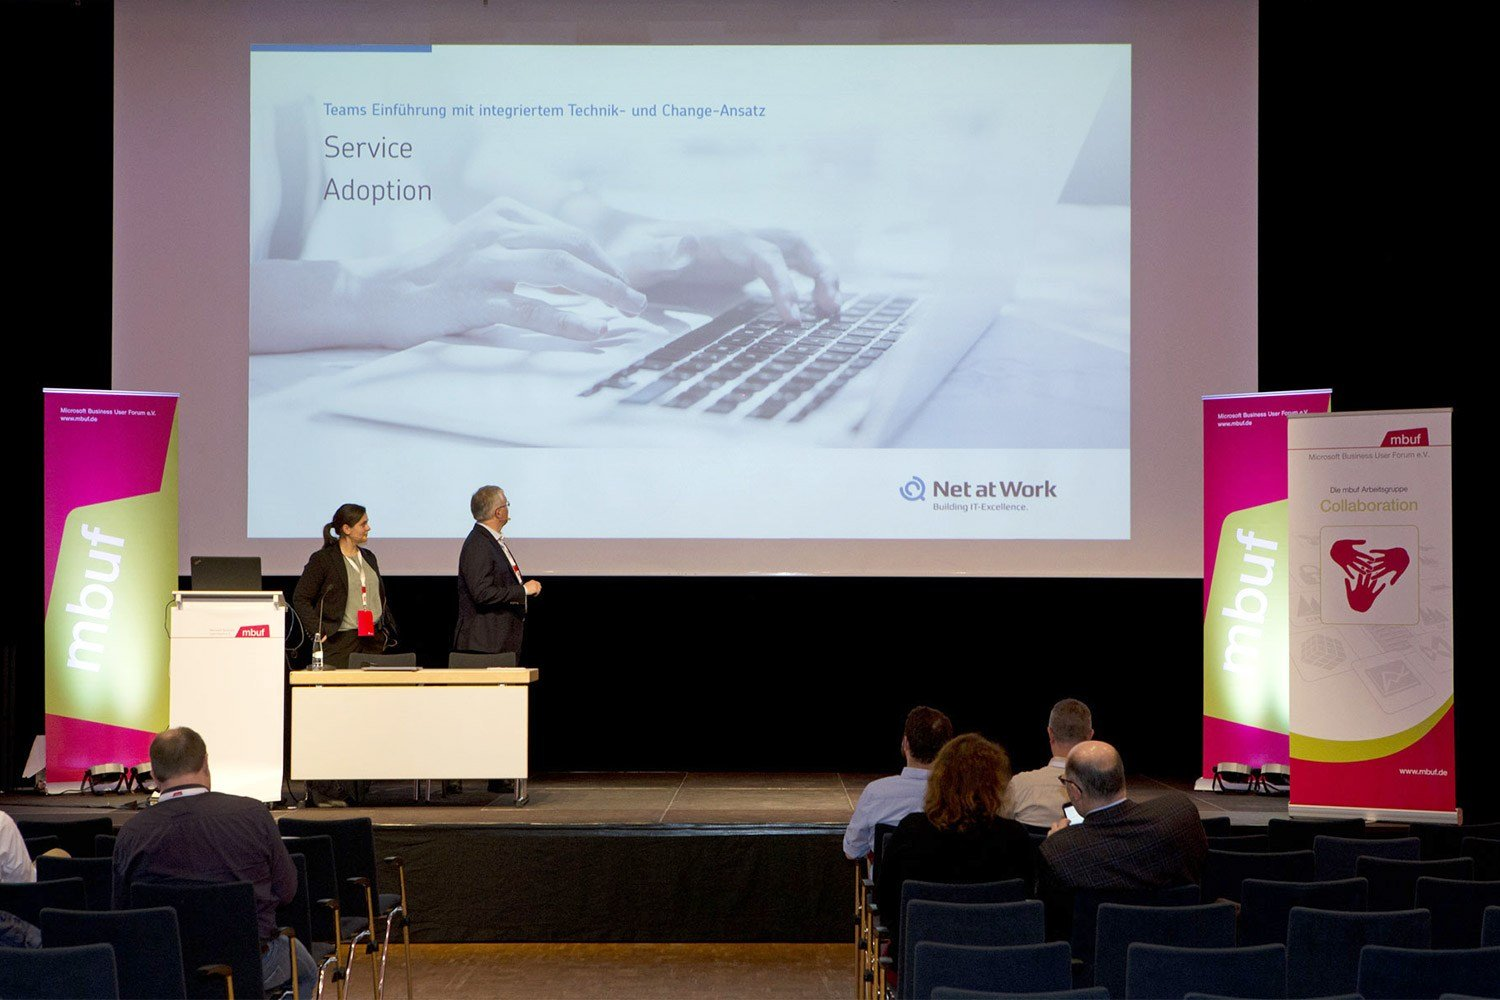 Microsoft Business User Forum Frank Carius Angelina Westerkamp bei der Präsentation